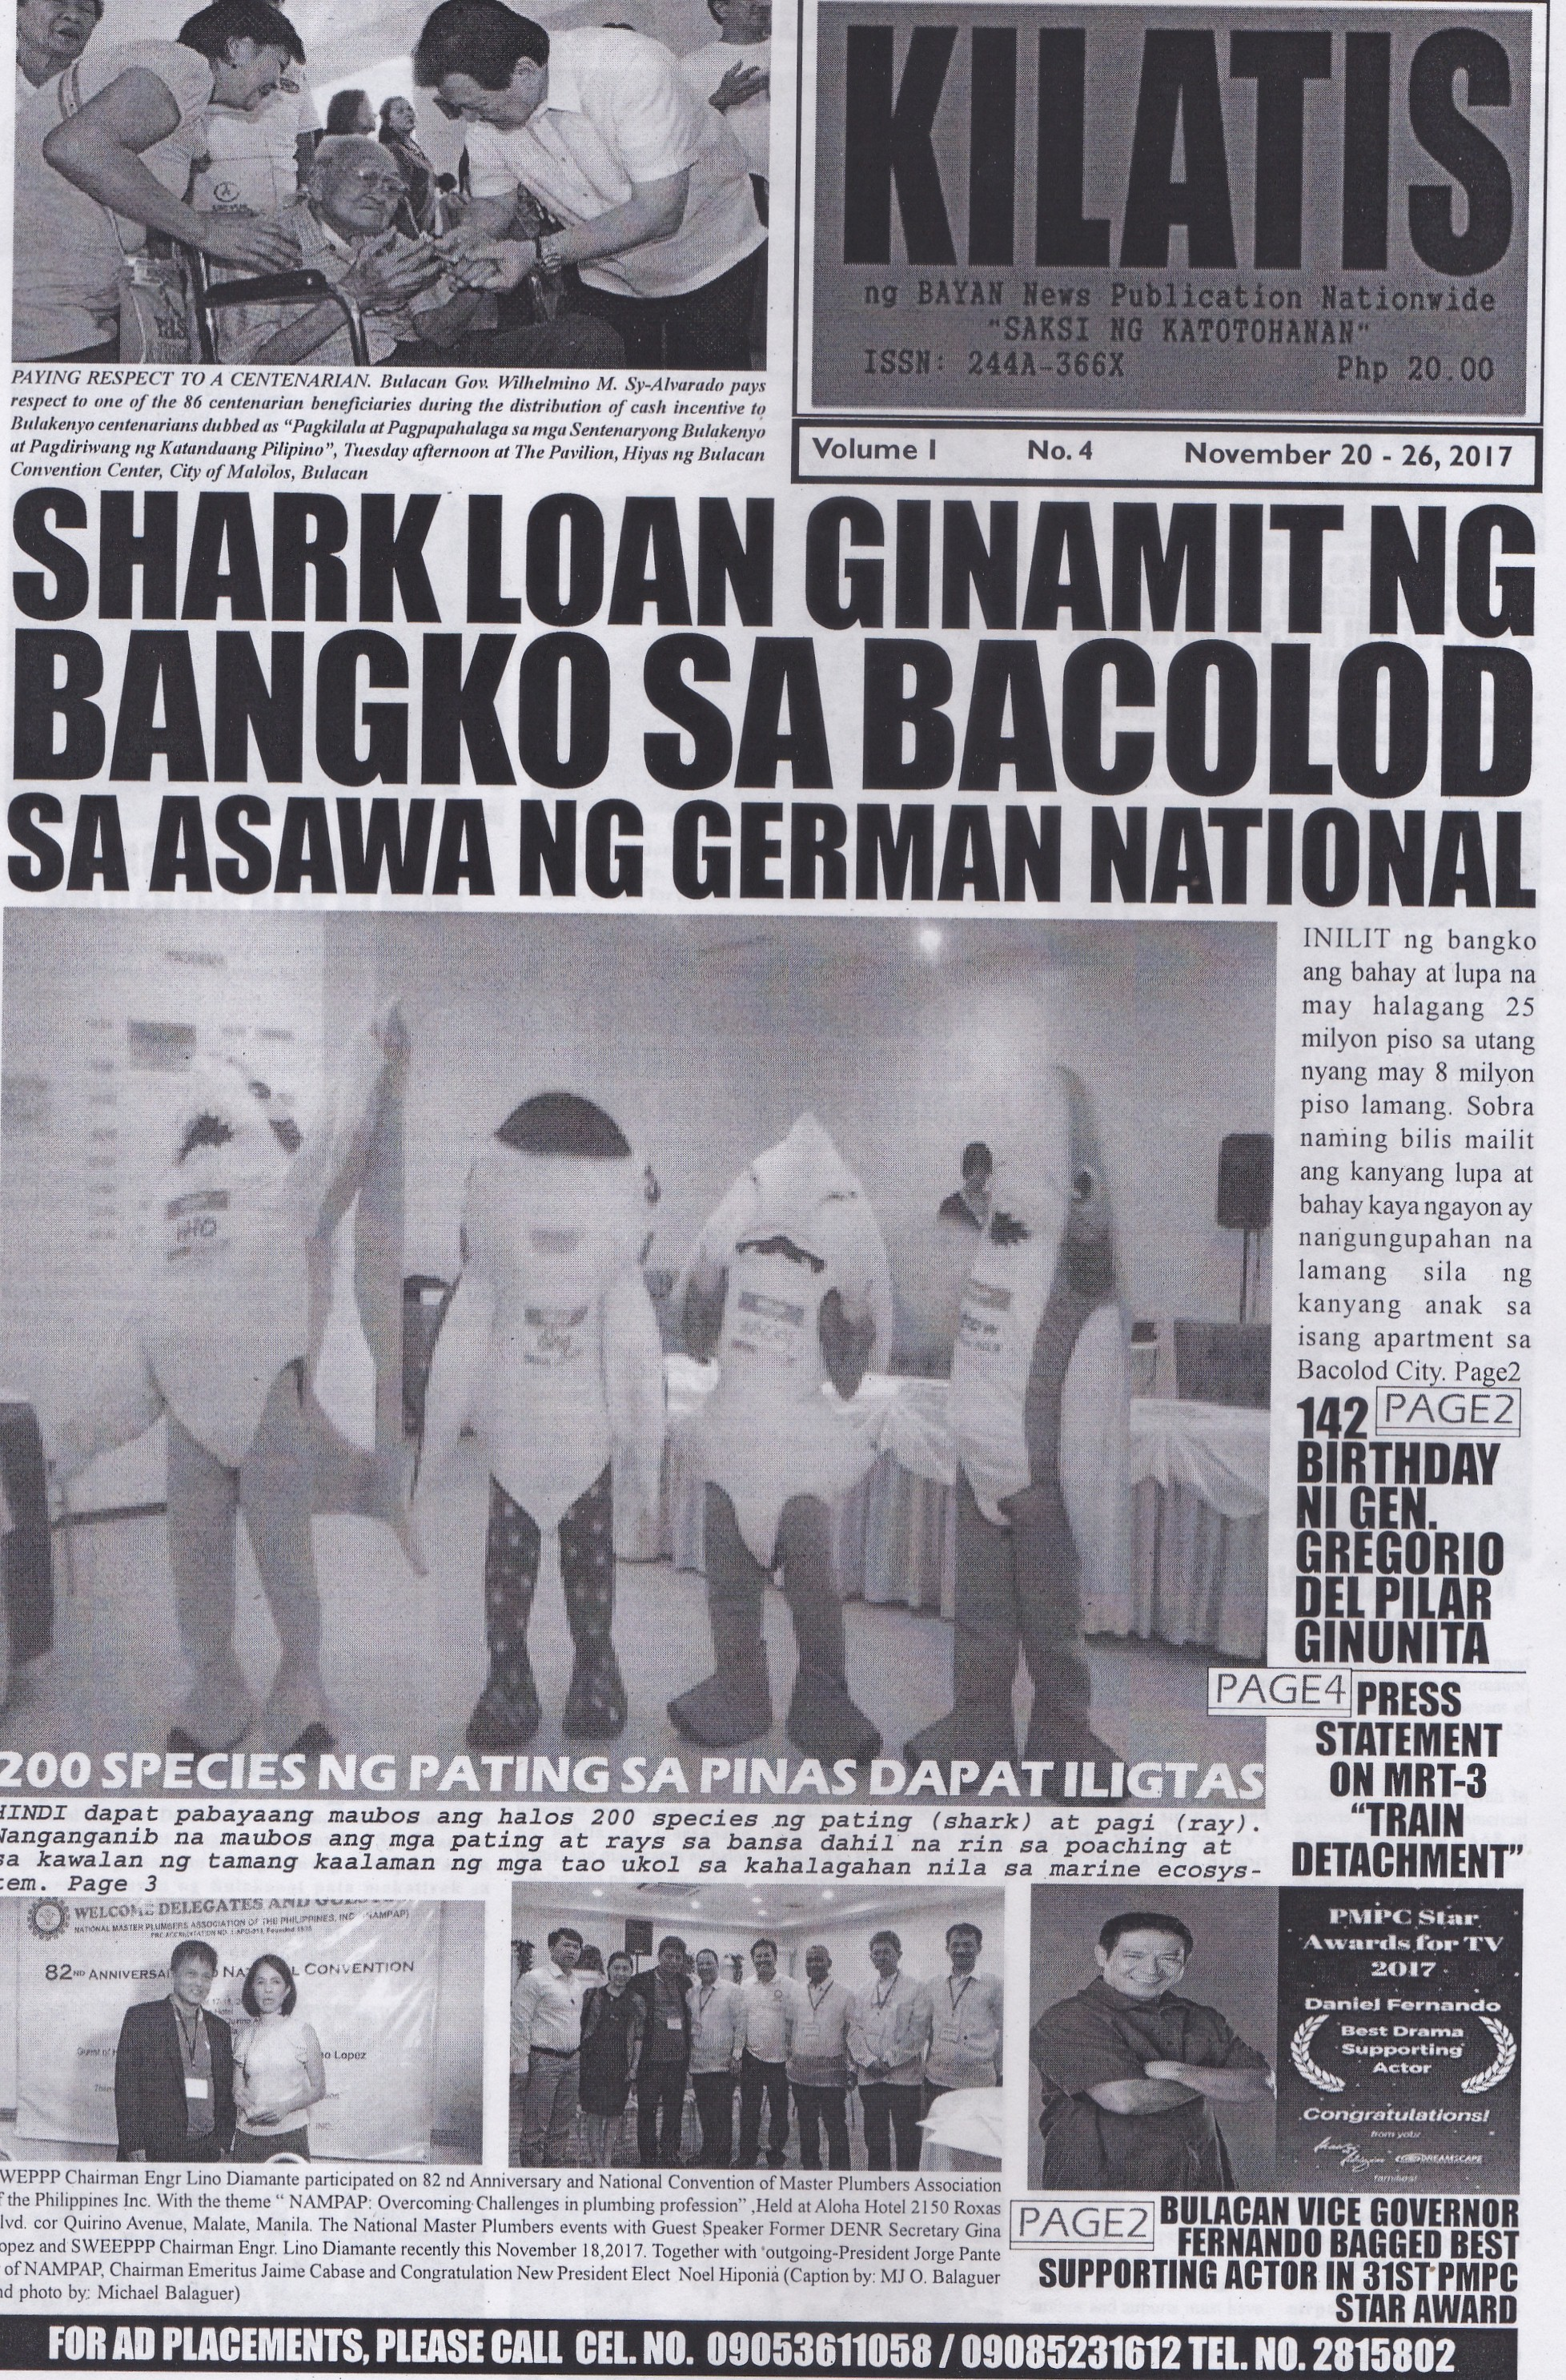 KILATIS ng bayan news publication fourth issue 112011262017